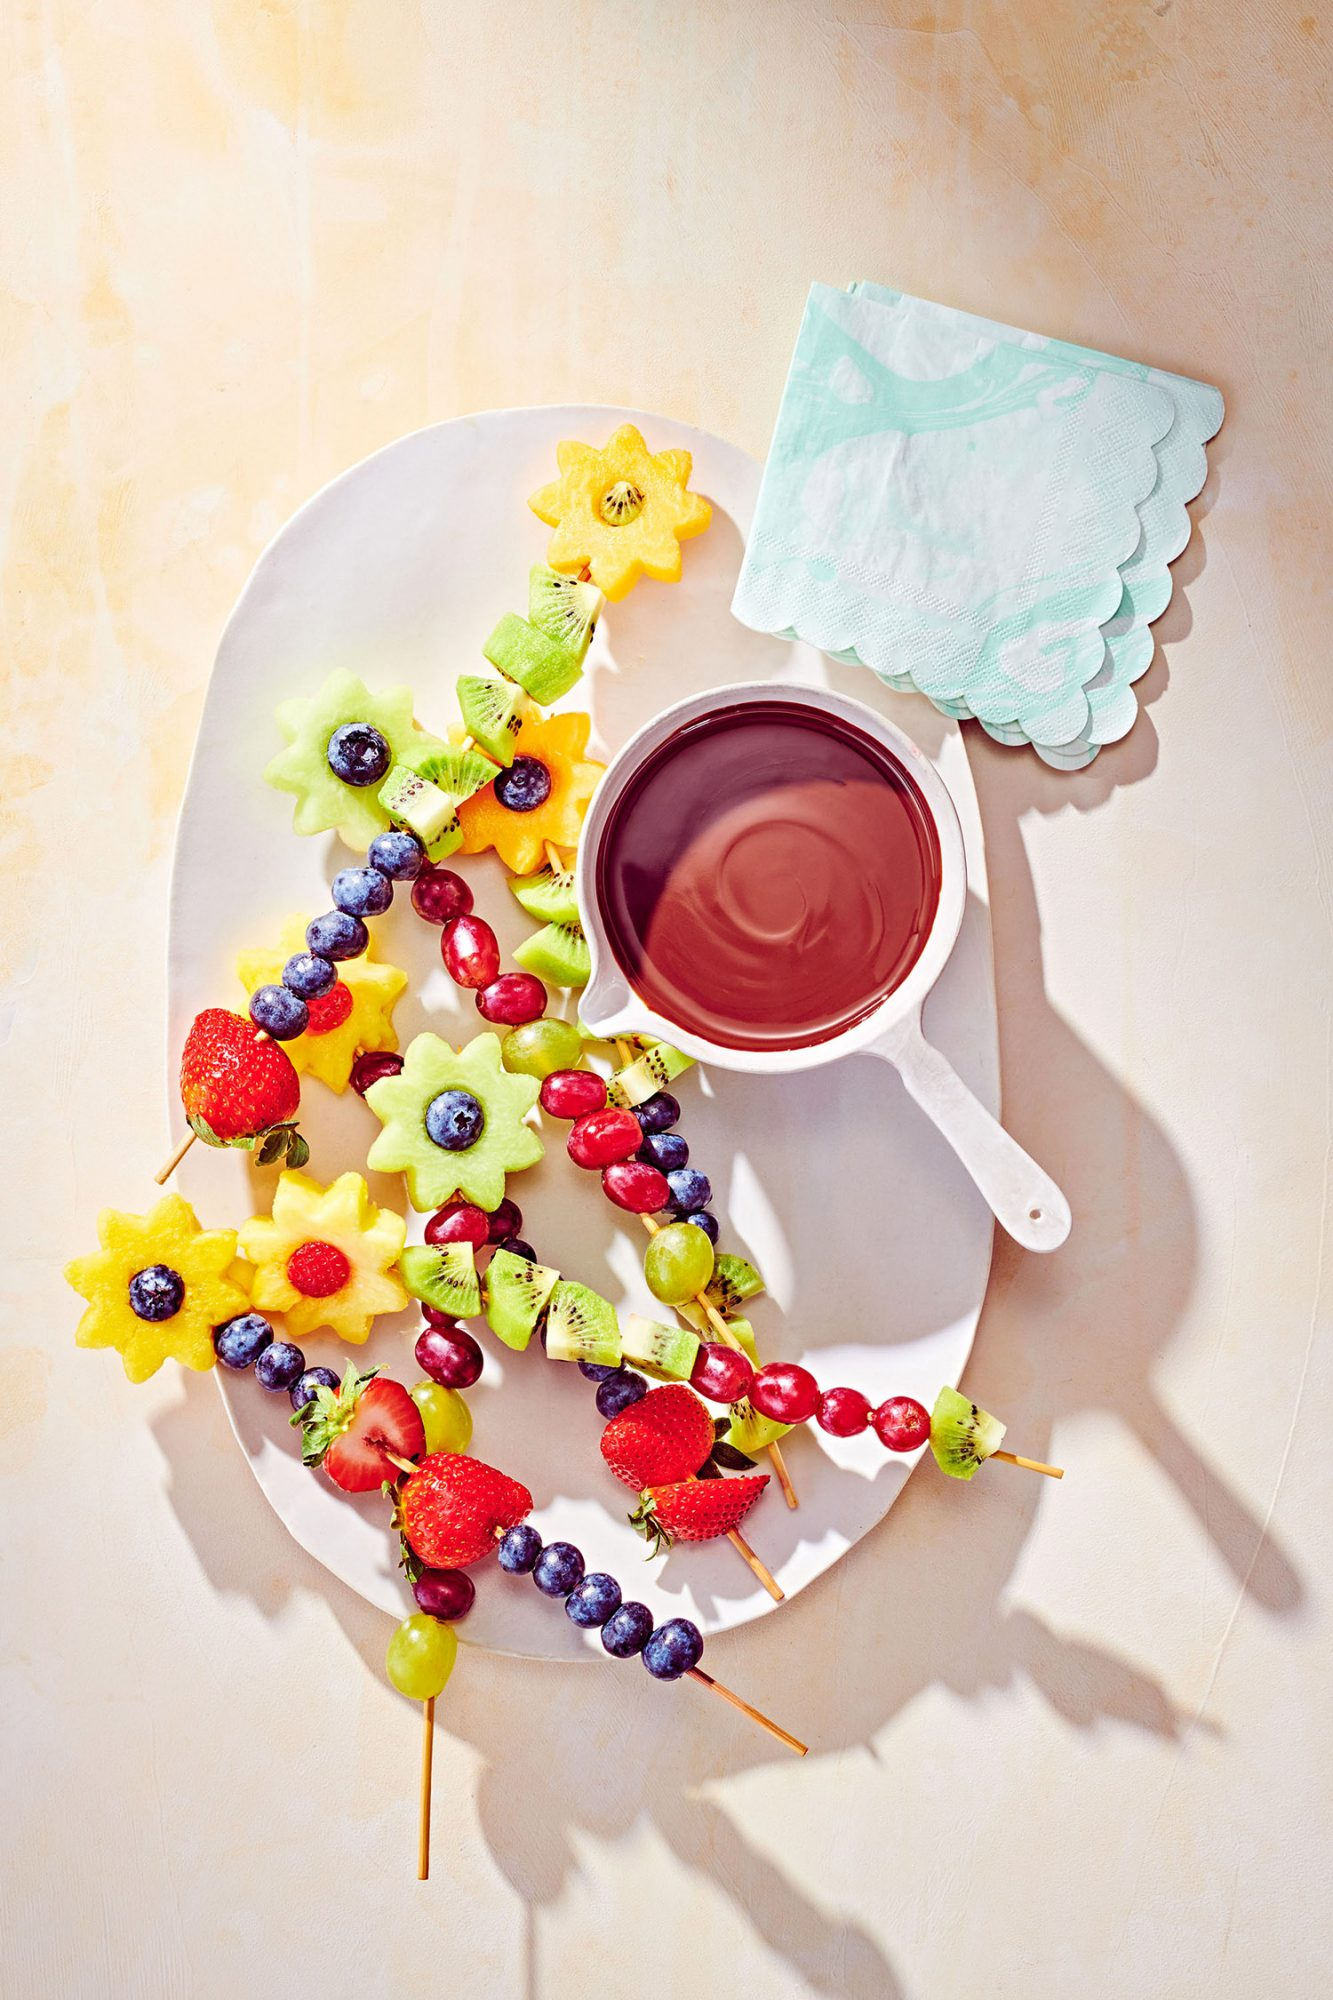 Dairy-Free Chocolate Fondue With Fruit Flowers